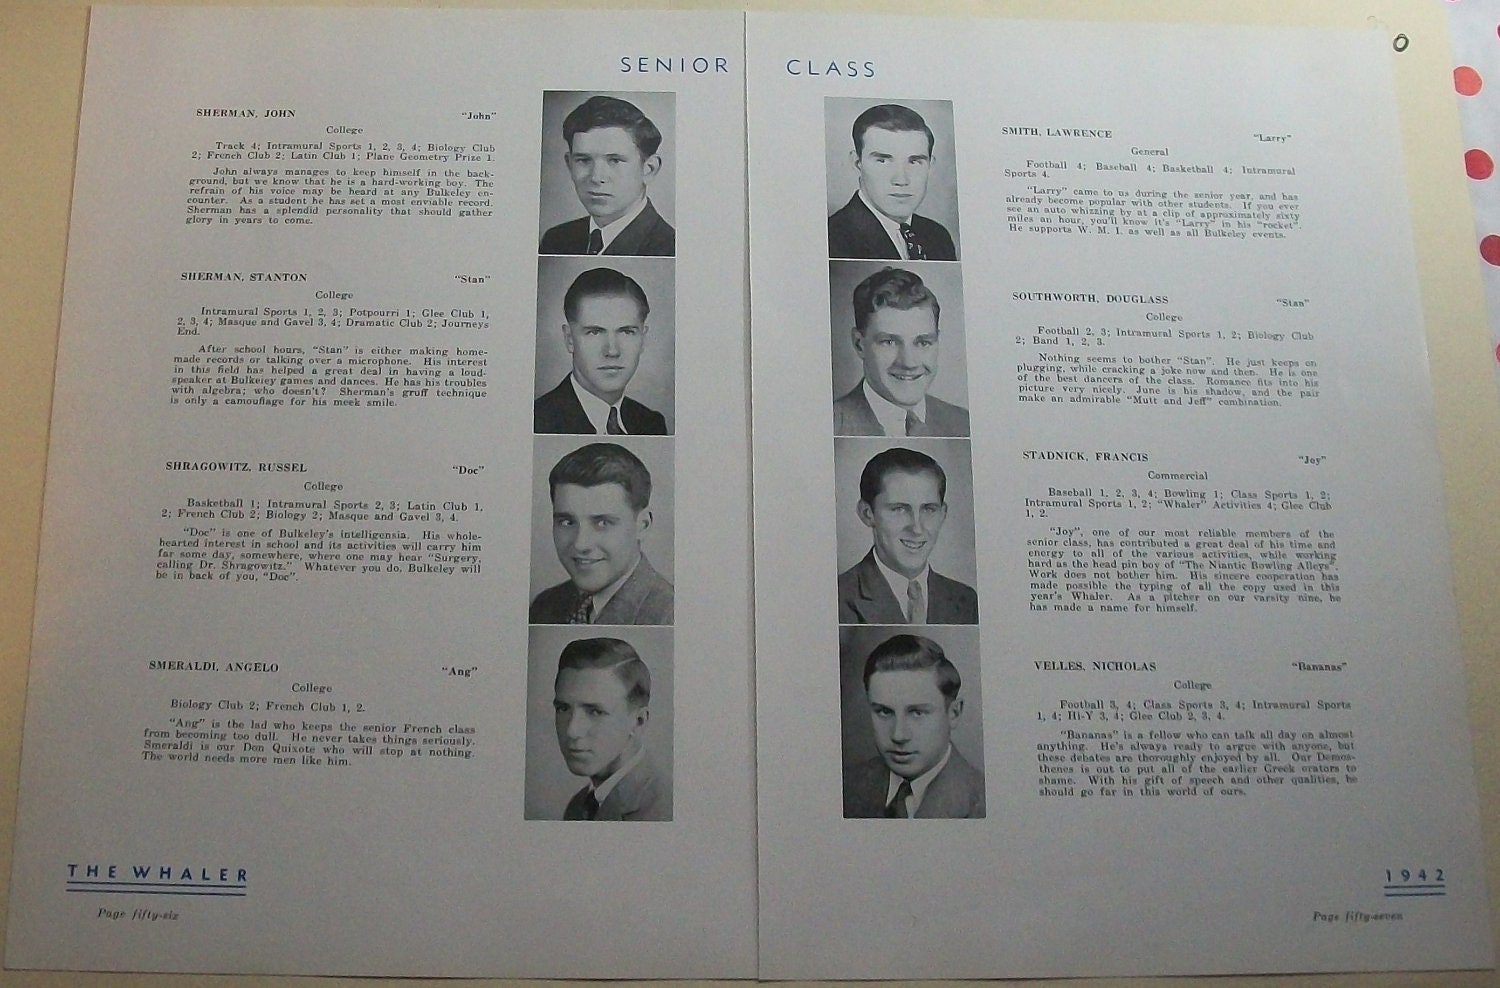 Funny Yearbook Pages: Vintage 1942 High School Yearbook Pages For Collage Altered